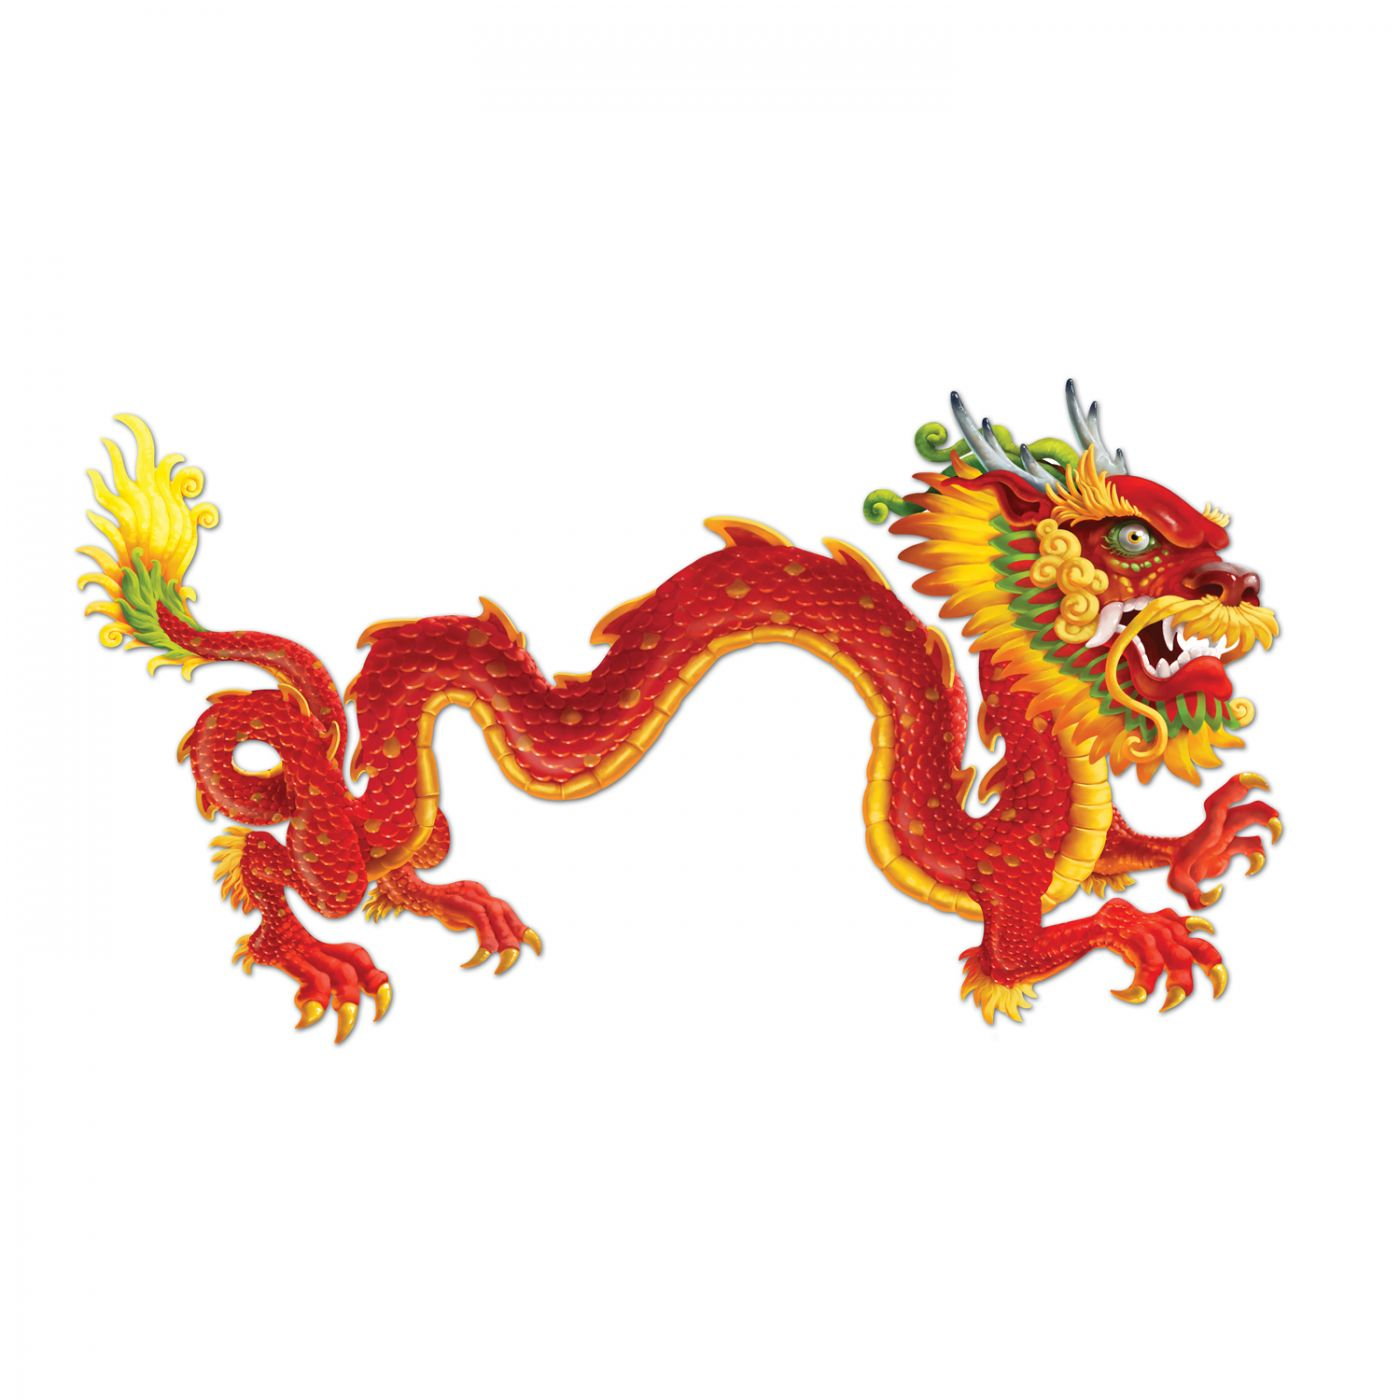 Jointed Dragon image